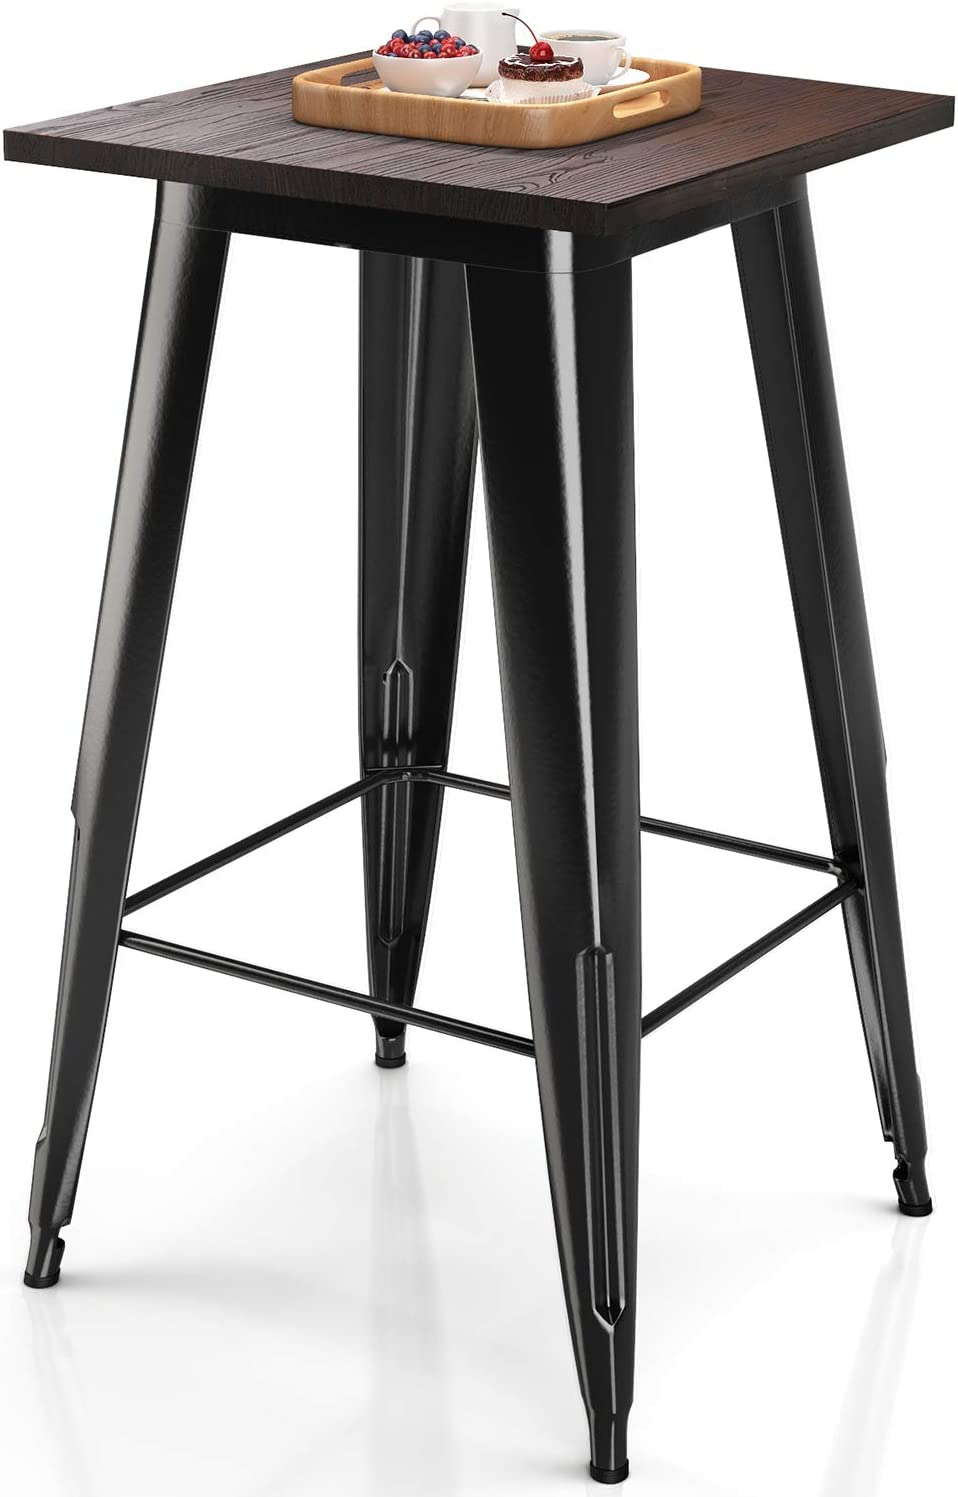 VIPEK Heavy-Duty Max 89% OFF Metal Bar Table Solid Sq At the price Elm Top Wood Inch 23.6